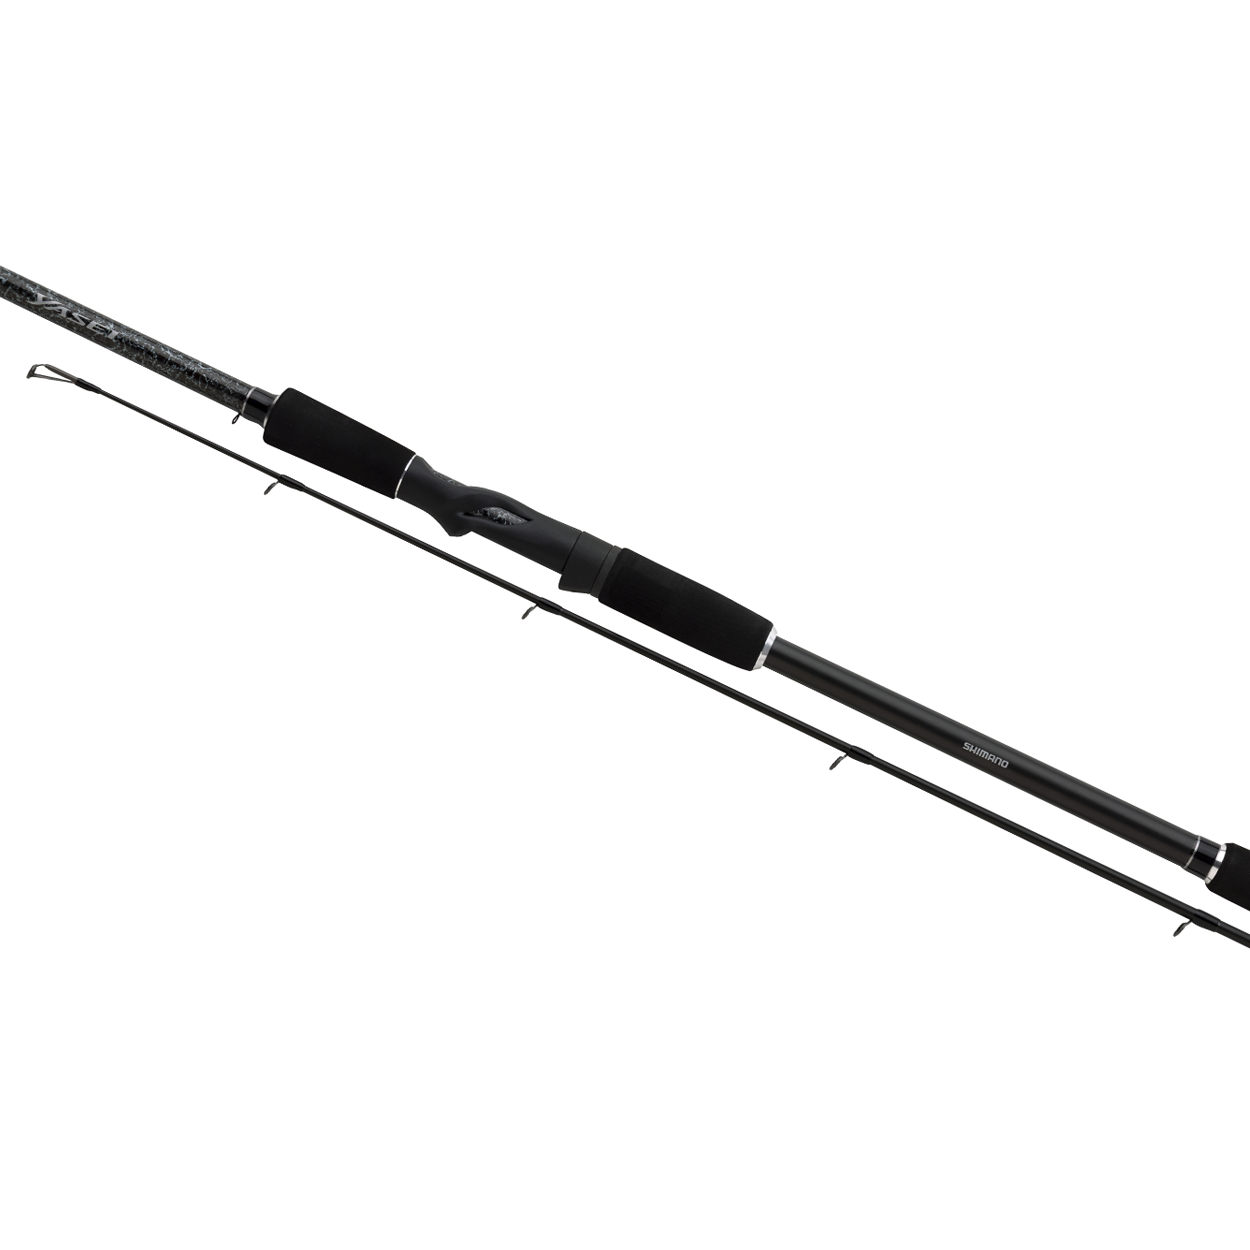 Shimano Yasei Pike Spinning 250 XH, 2.50m, 40100g, 2 Teile, Spinning Angelrute